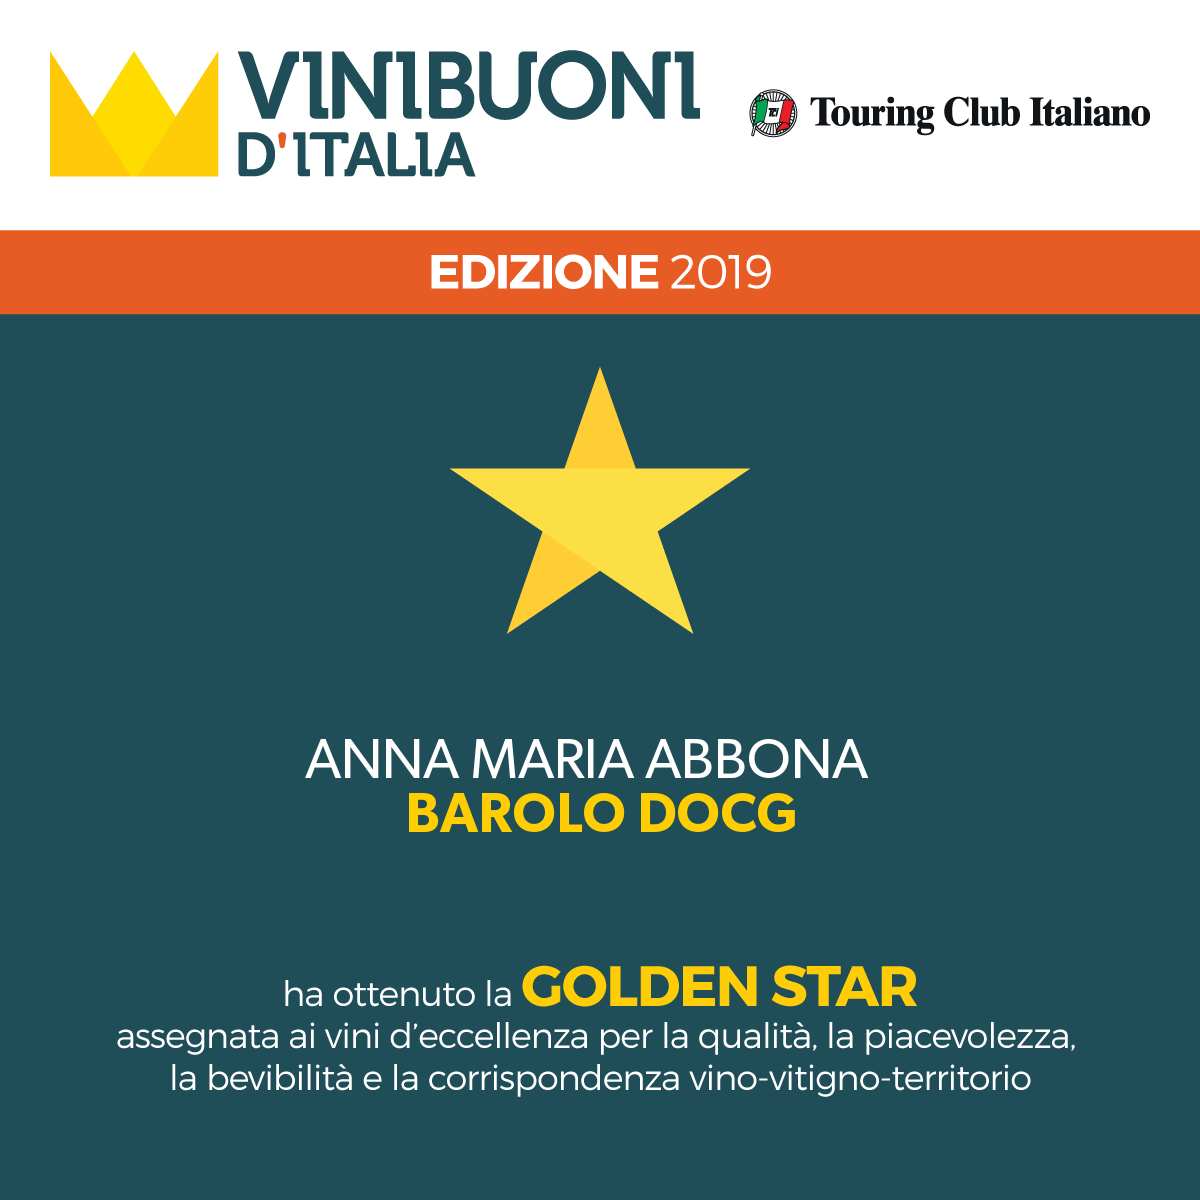 golden-star-vinibuoni-ed2019